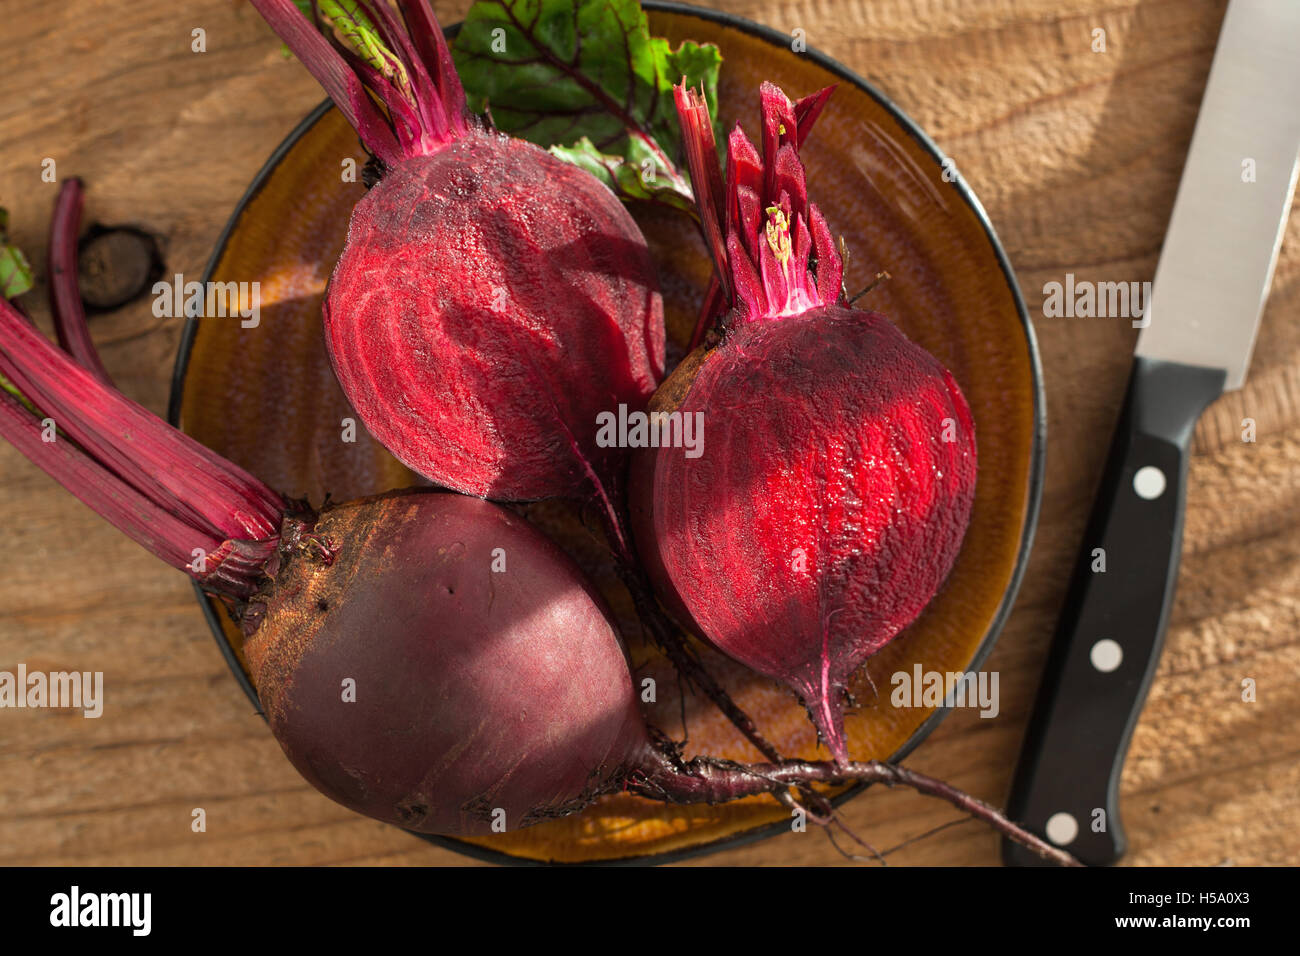 raw beetroot on wooden background - Stock Image